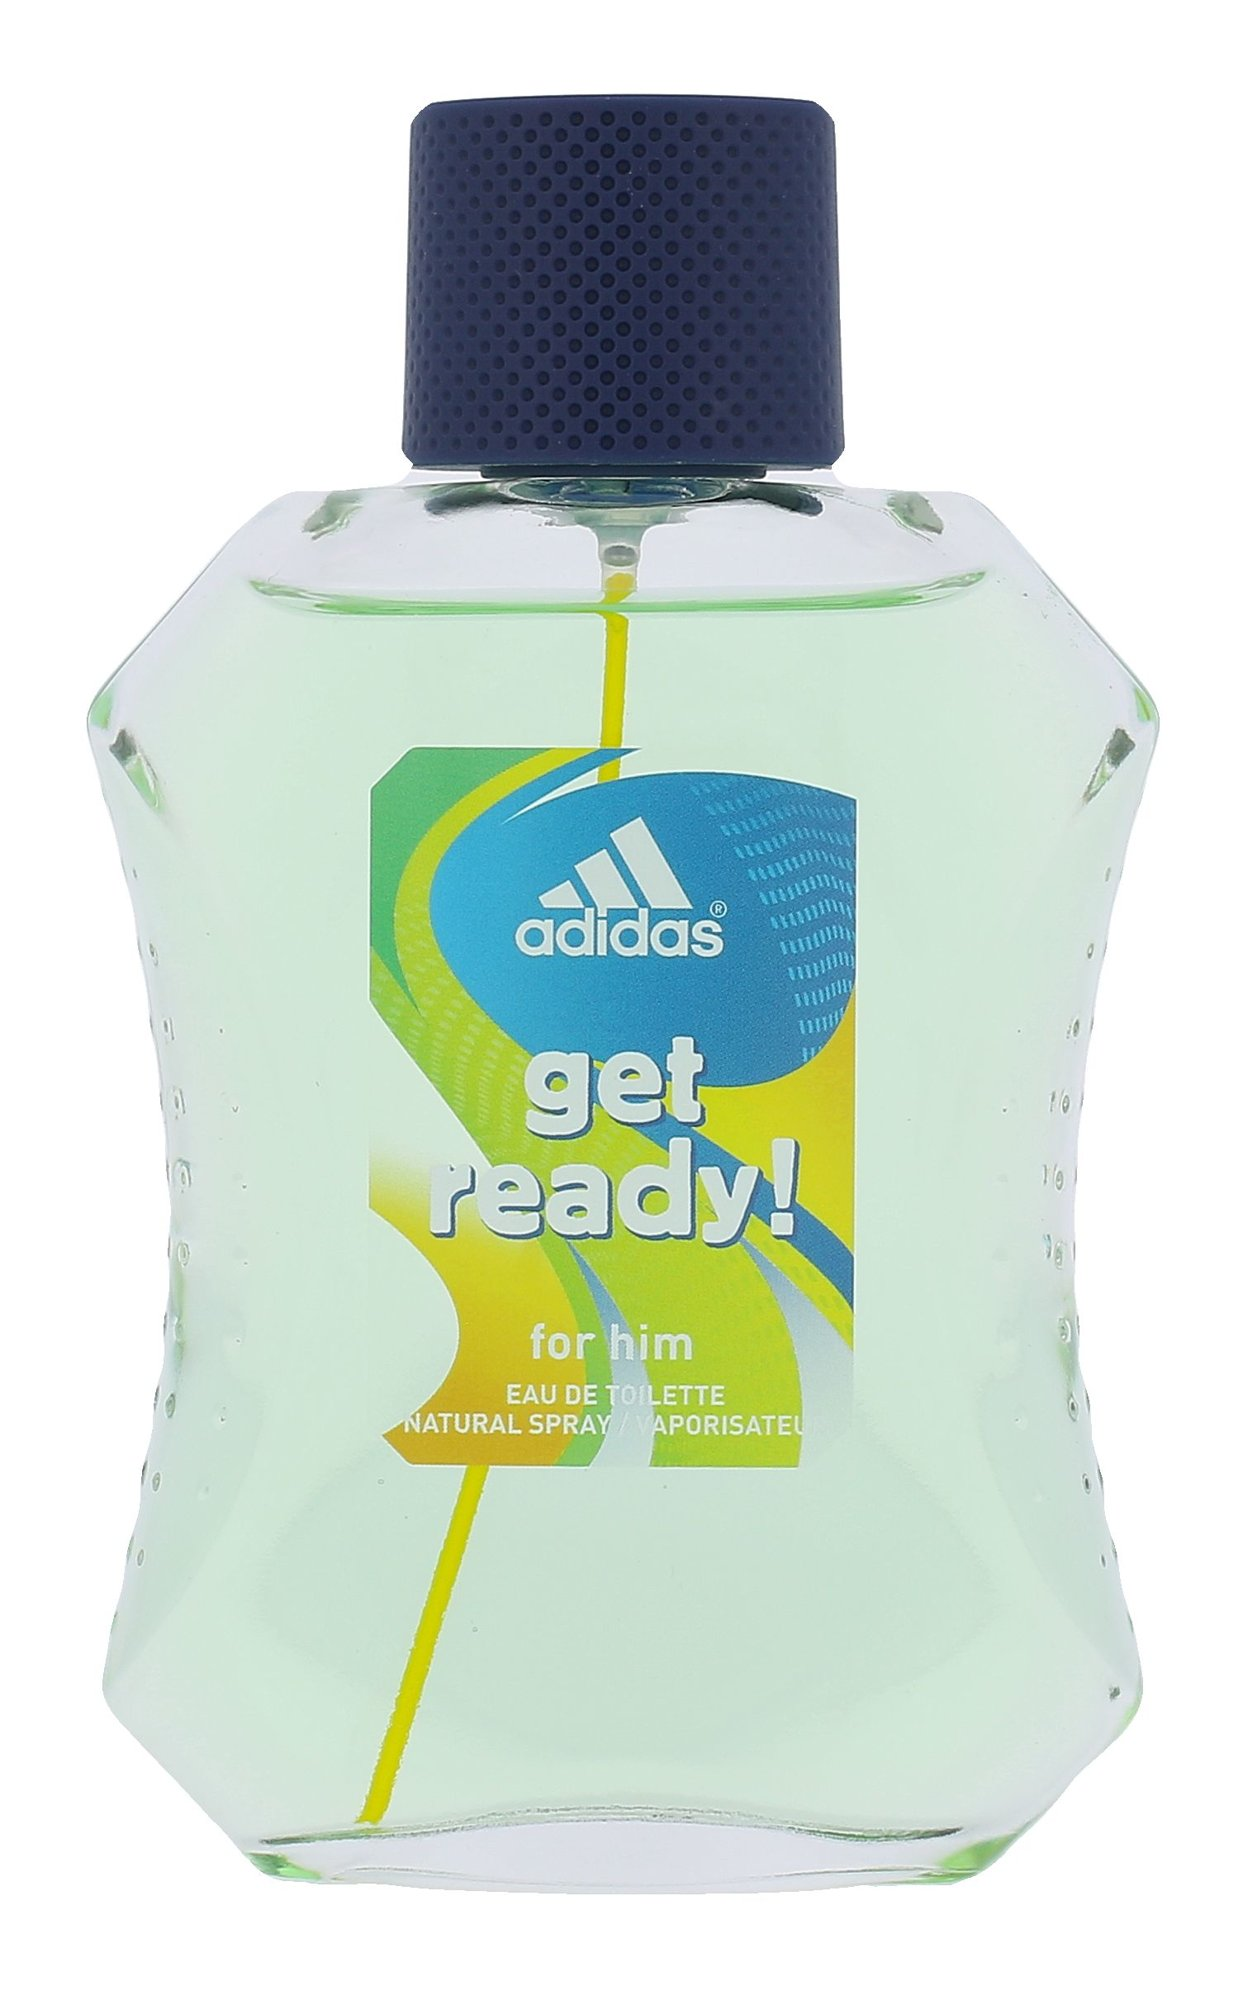 Adidas Get Ready! For Him EDT 100ml